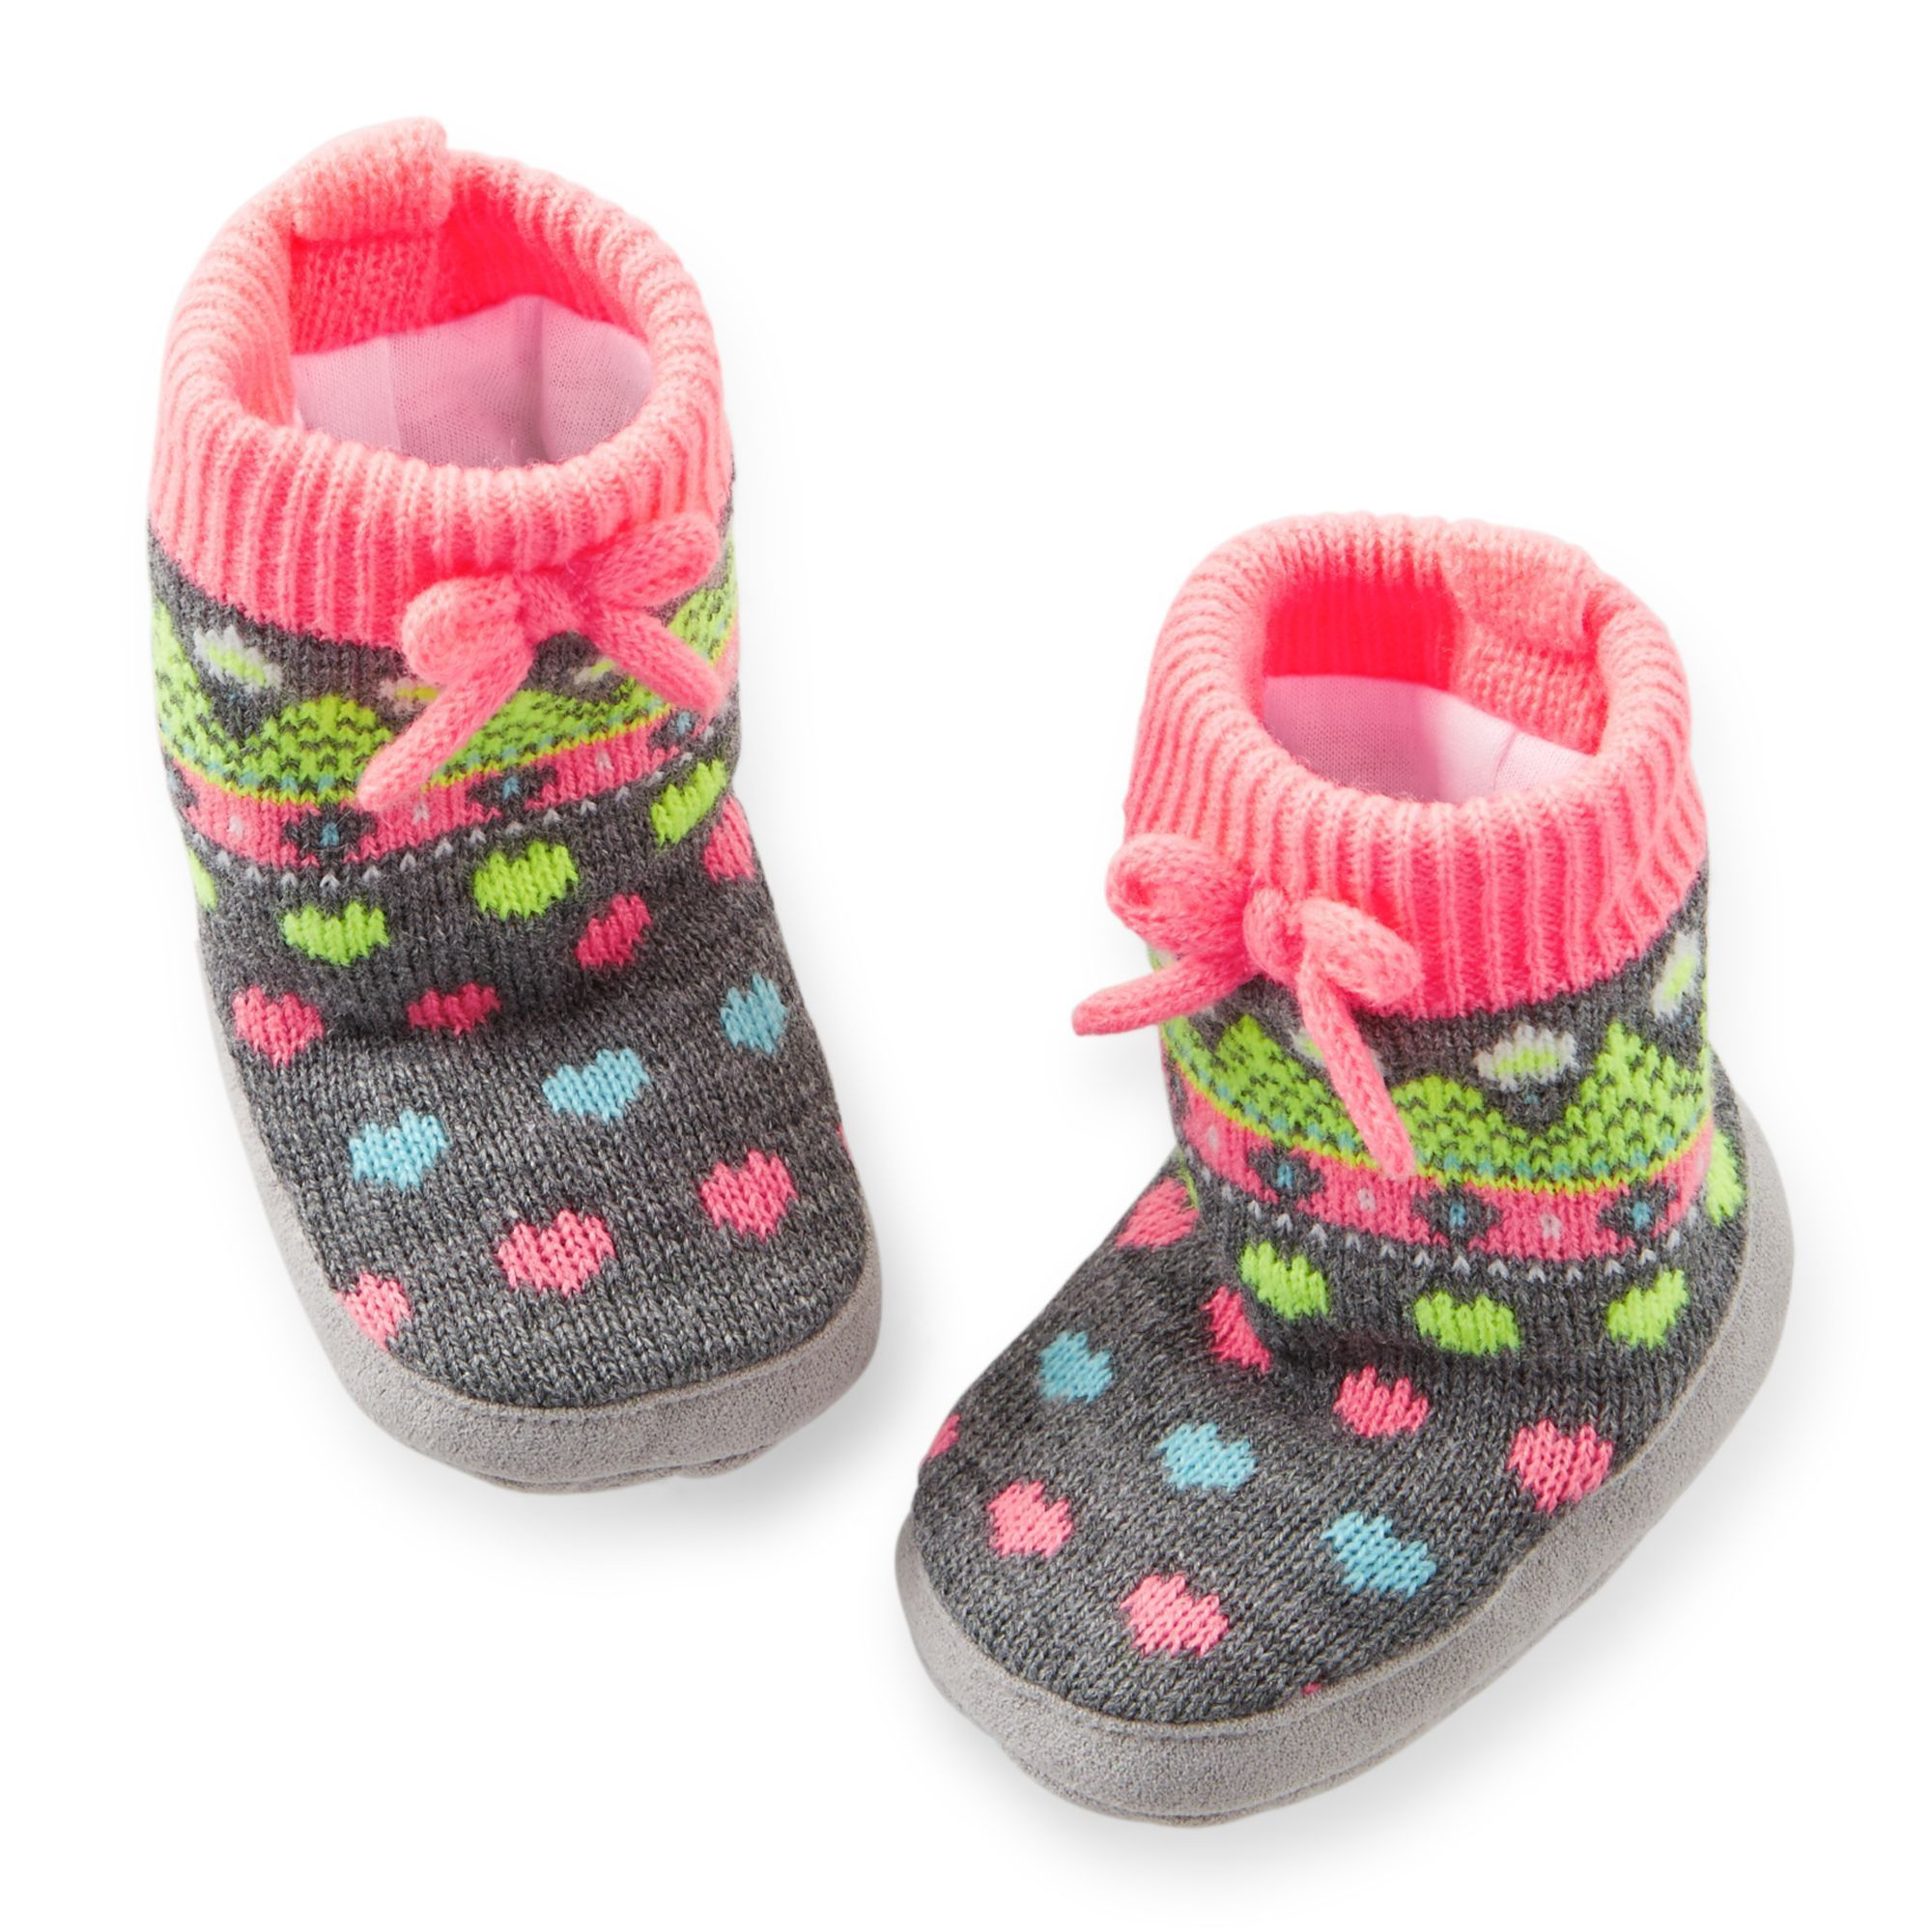 omg so cute winter warmth slippers Future littles